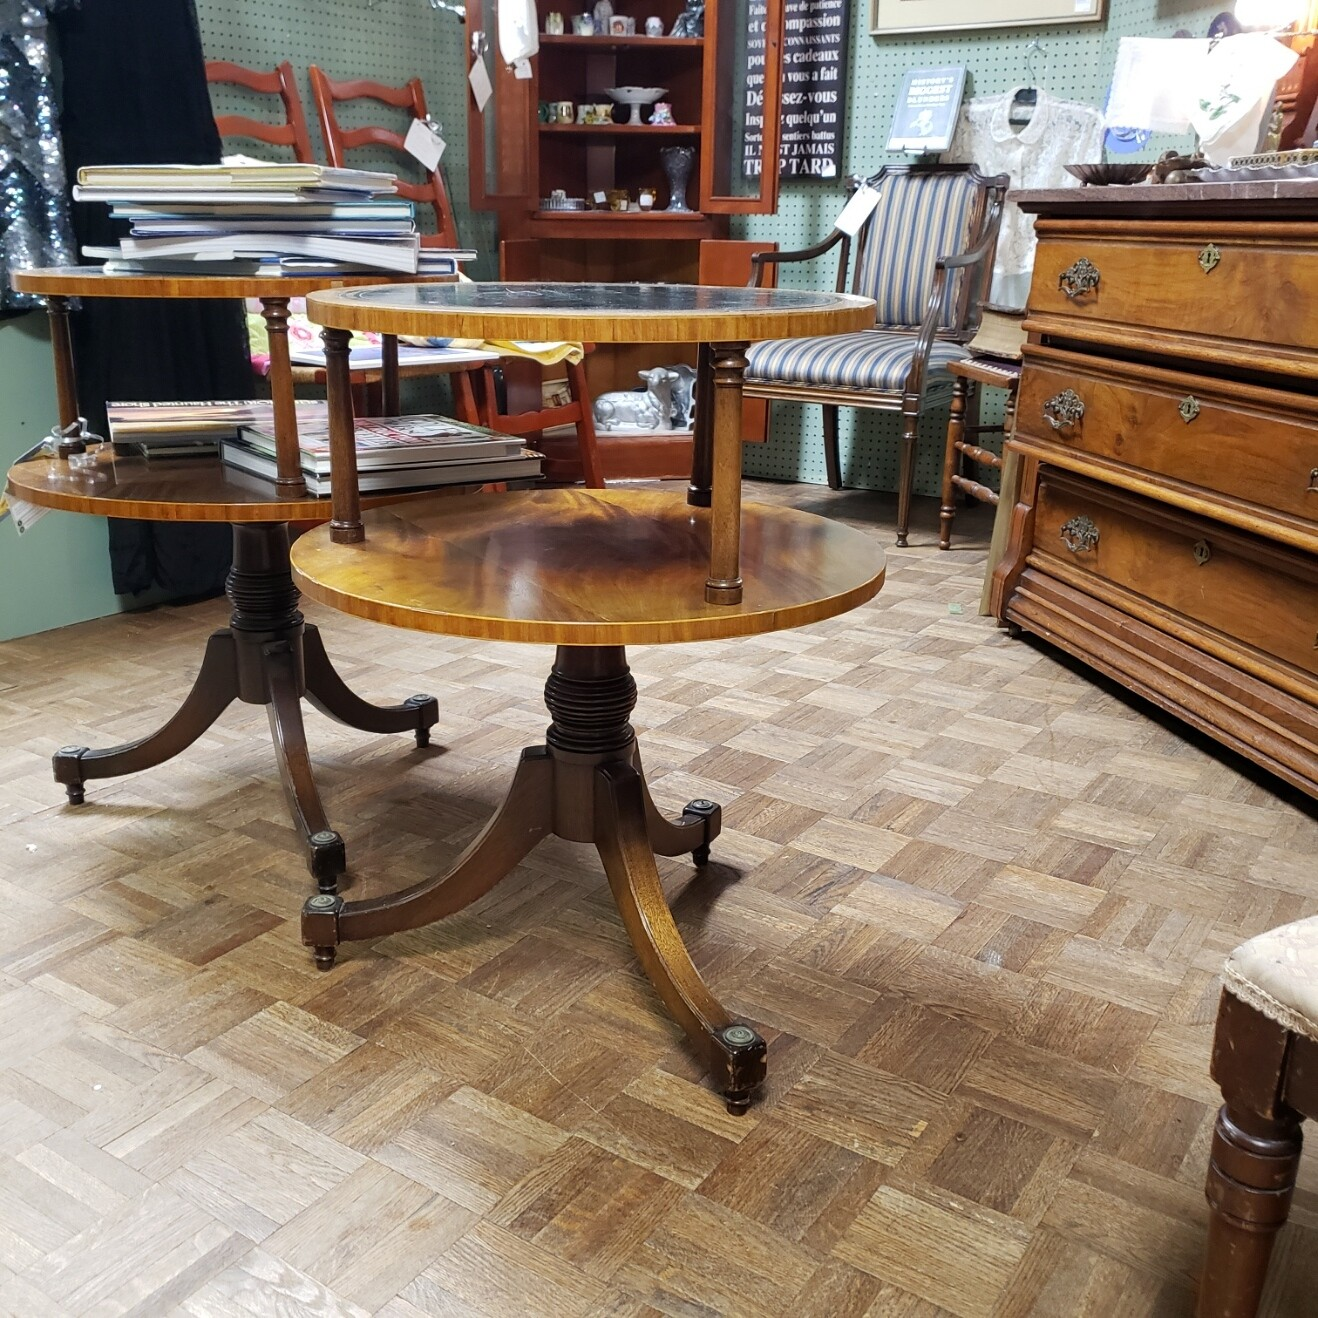 Pair of Leather Top Tables - B85